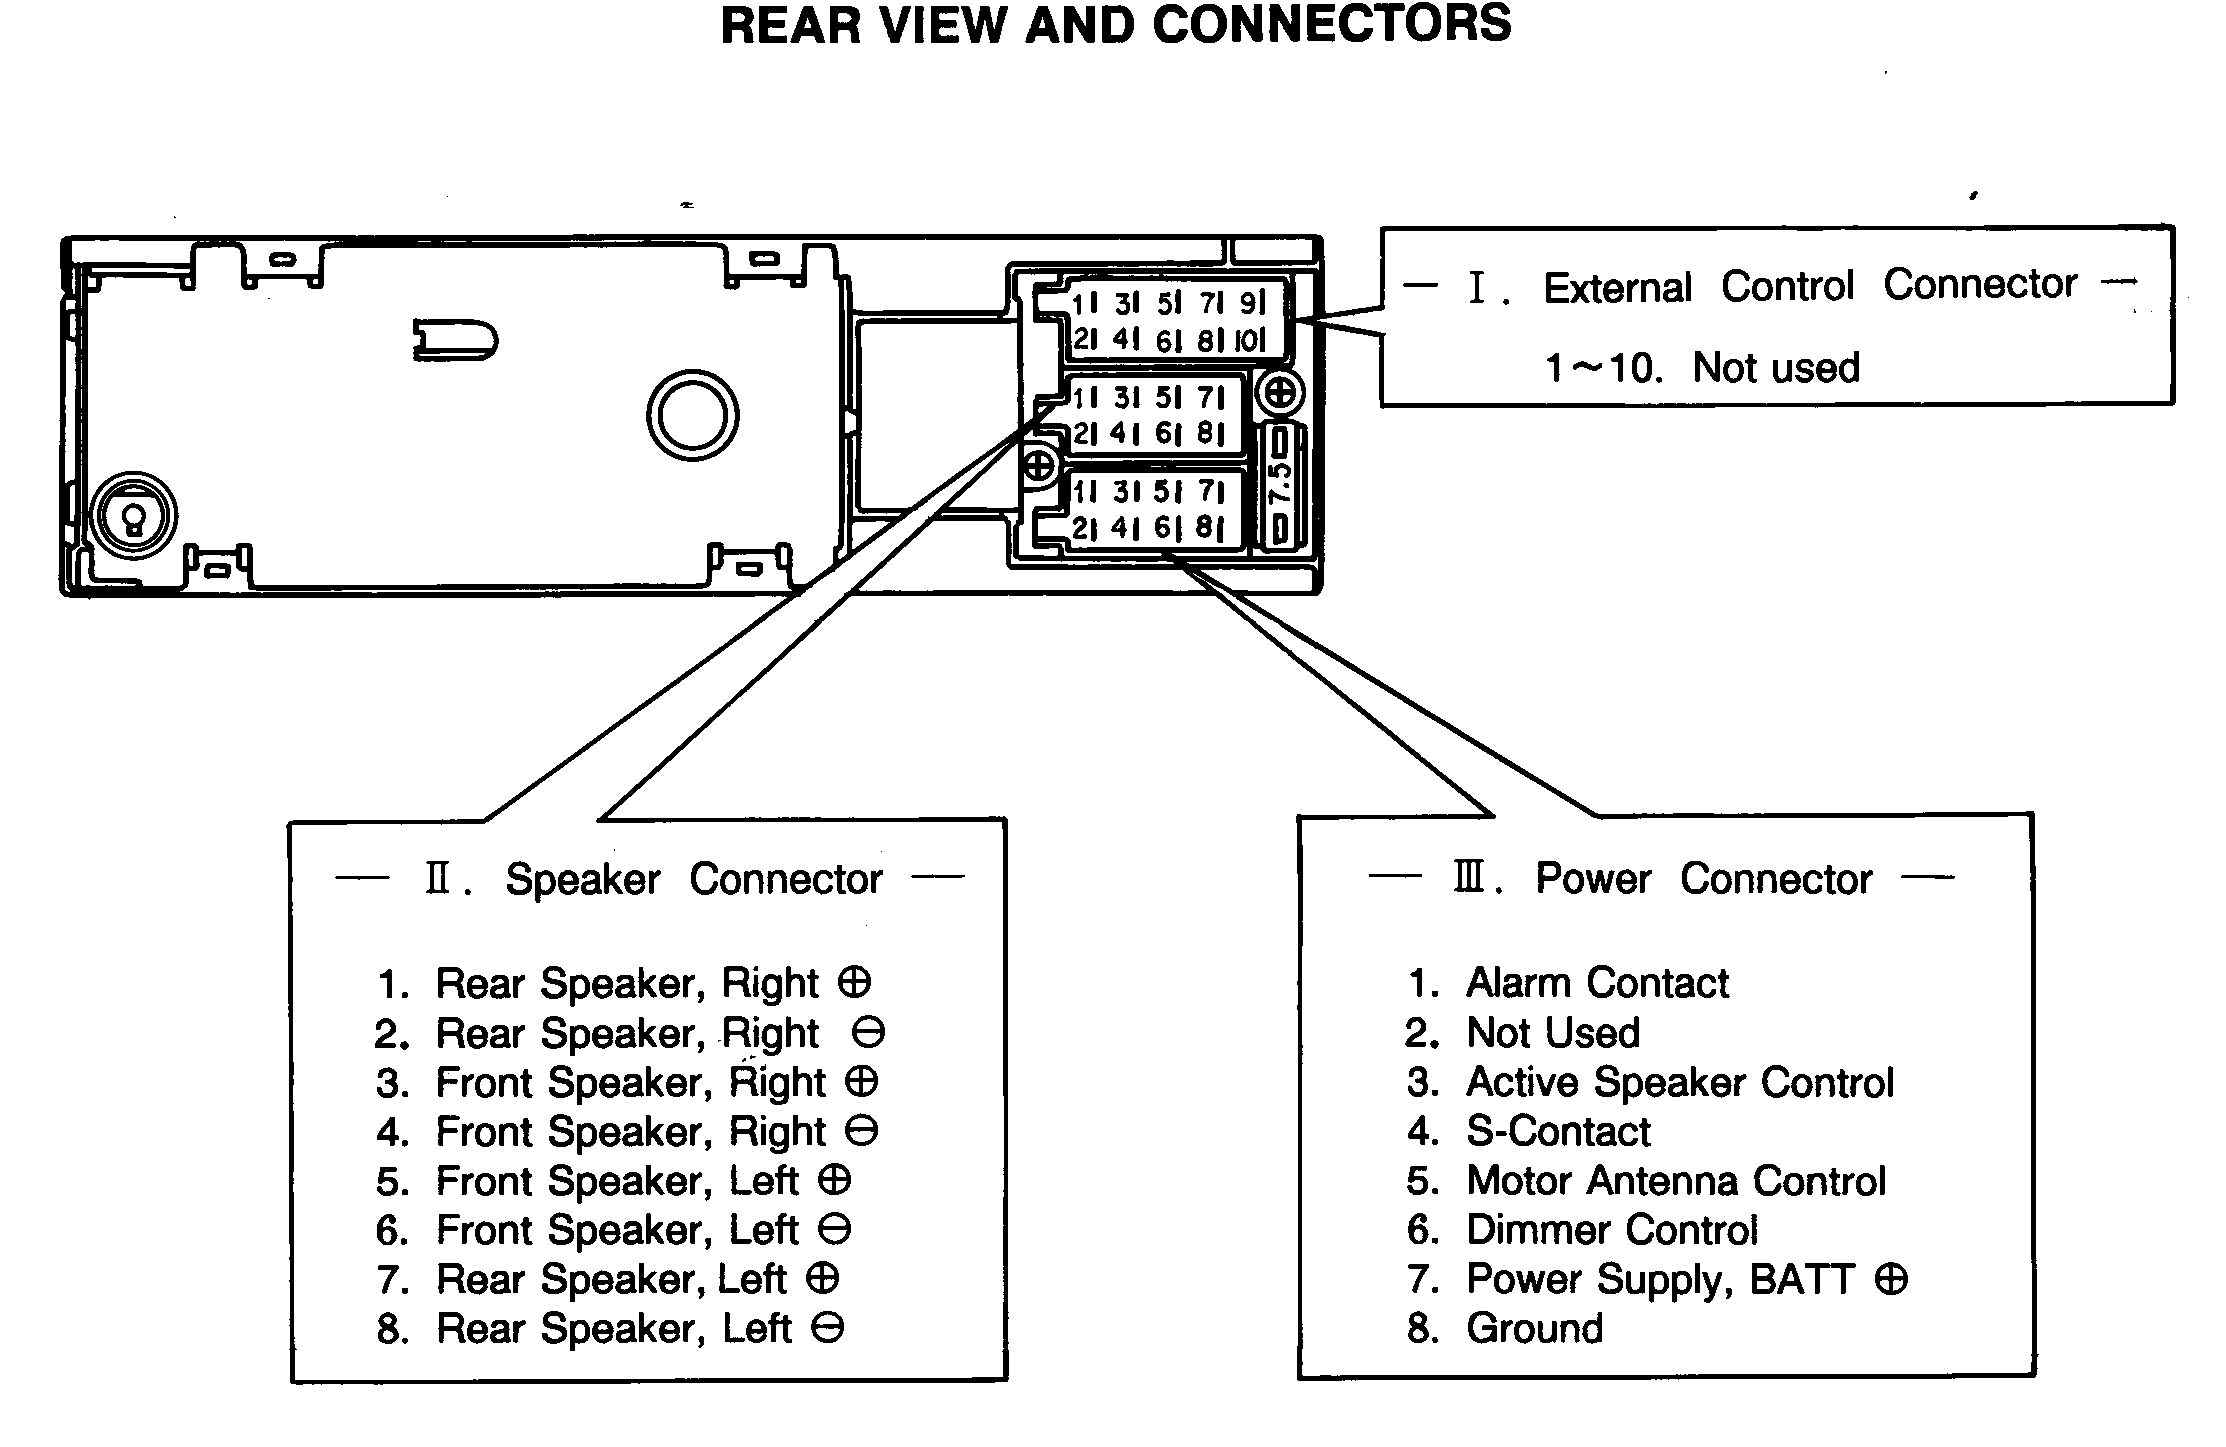 WireHarnessVW121401 wiring diagram car radio the wiring diagram readingrat net 2007 vw rabbit radio wiring diagram at virtualis.co